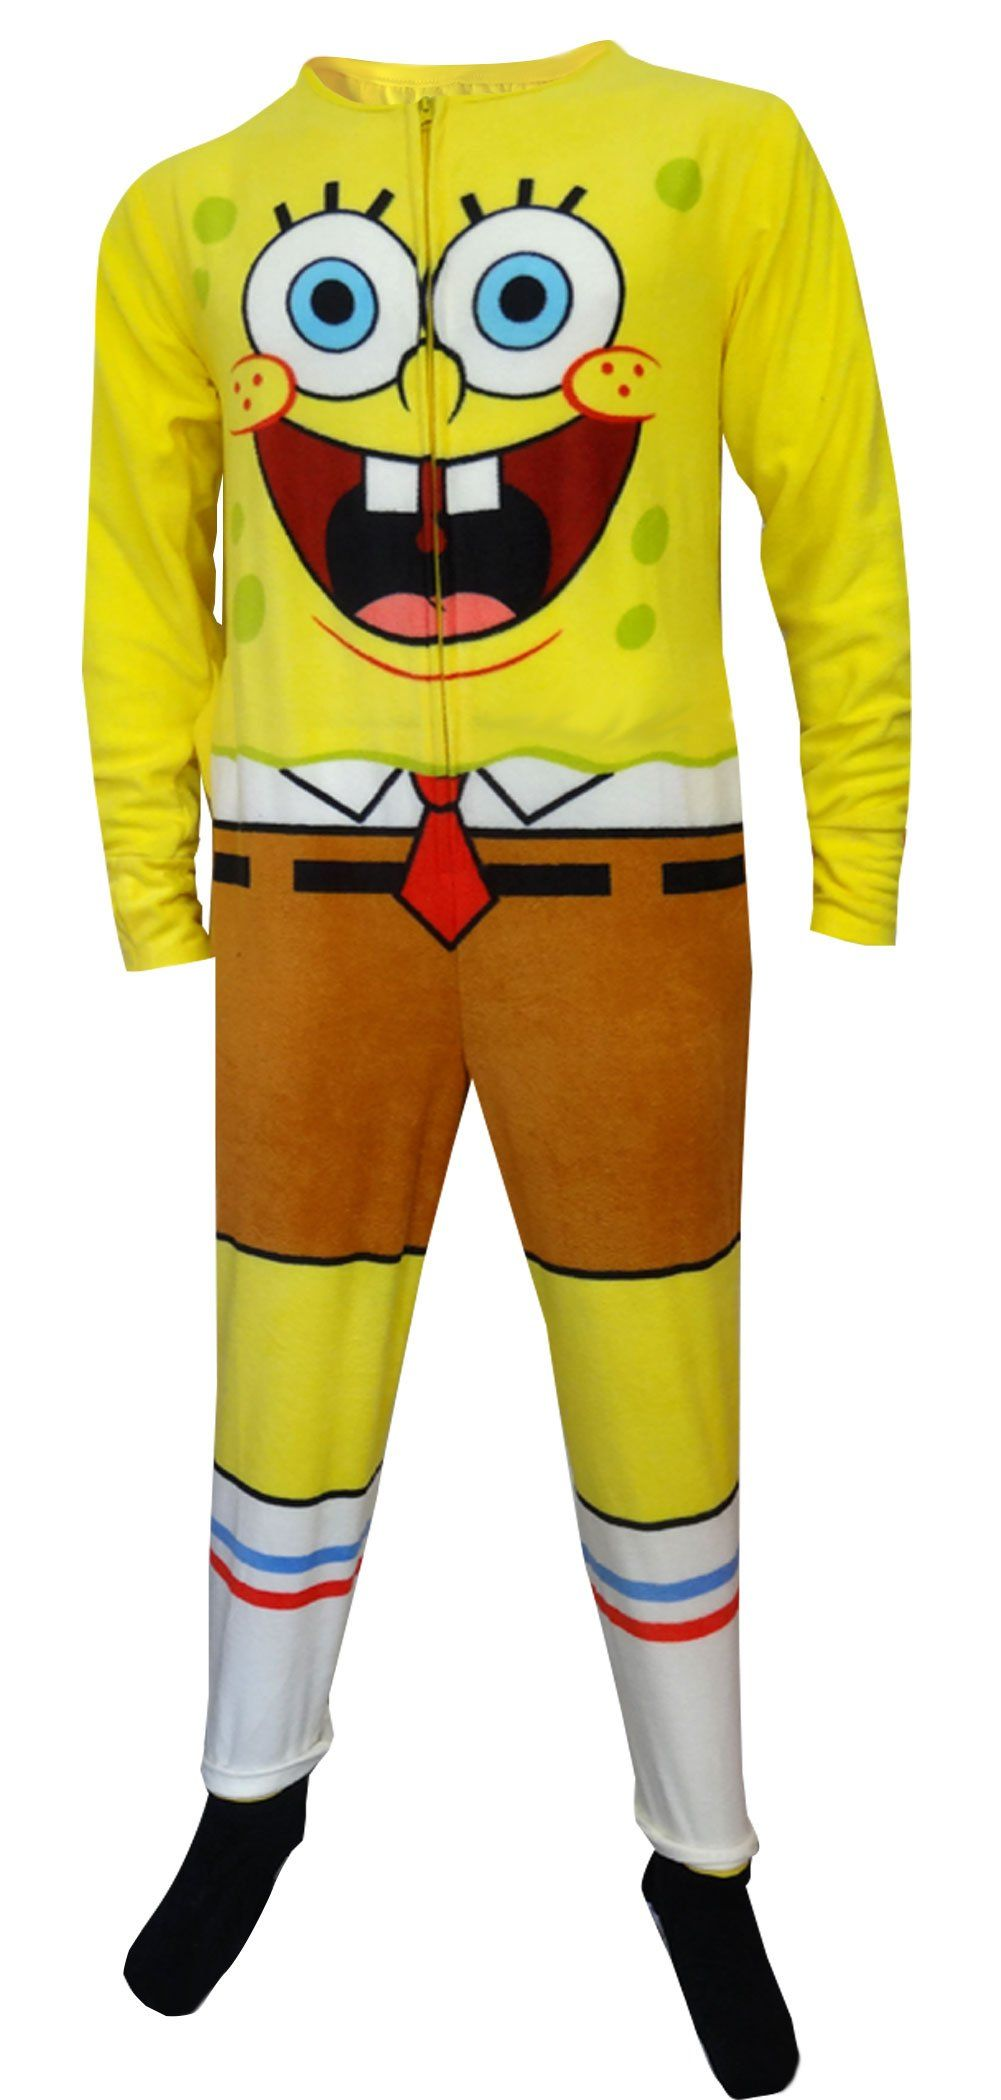 8eeced75be Amazon.com  SpongeBob Squarepants Adult Onesie Pajama for men  Clothing